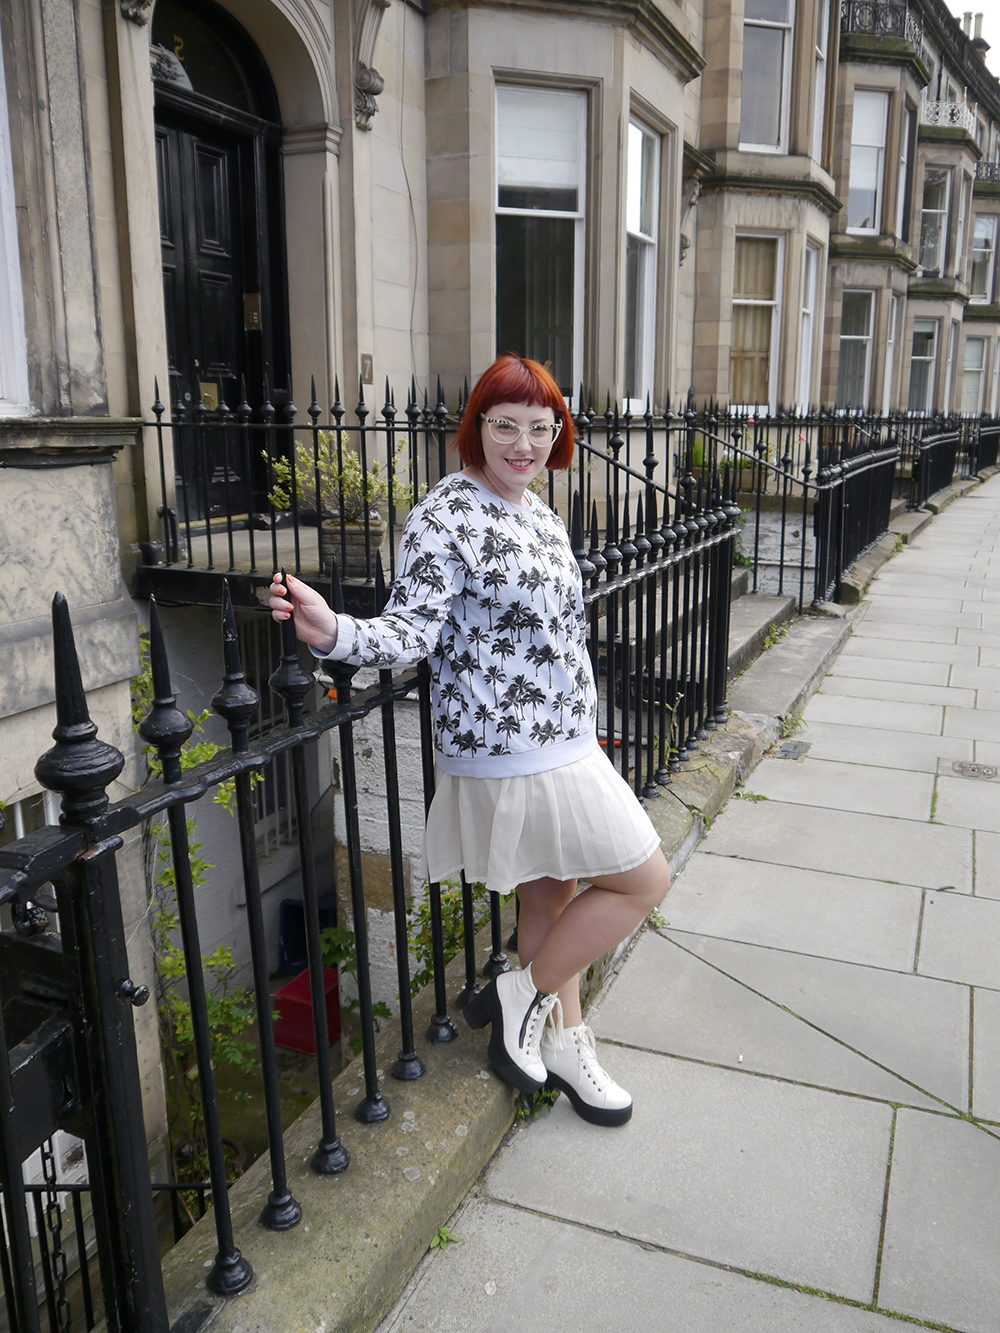 Scottish blogger, Edinburgh blogger, Scottish street style, quirky street style, dressing to a theme, food inspired outfit, pale girl style, Spex Pistols glasses, red head, red hair, H&M, patterned jumper, palm tree sweatshirt, white pleated dress, white boots, lace up shoes, milk necklace, Tiny Treat Boutique necklace, milk bottle jewellery, Lucky Dip Club